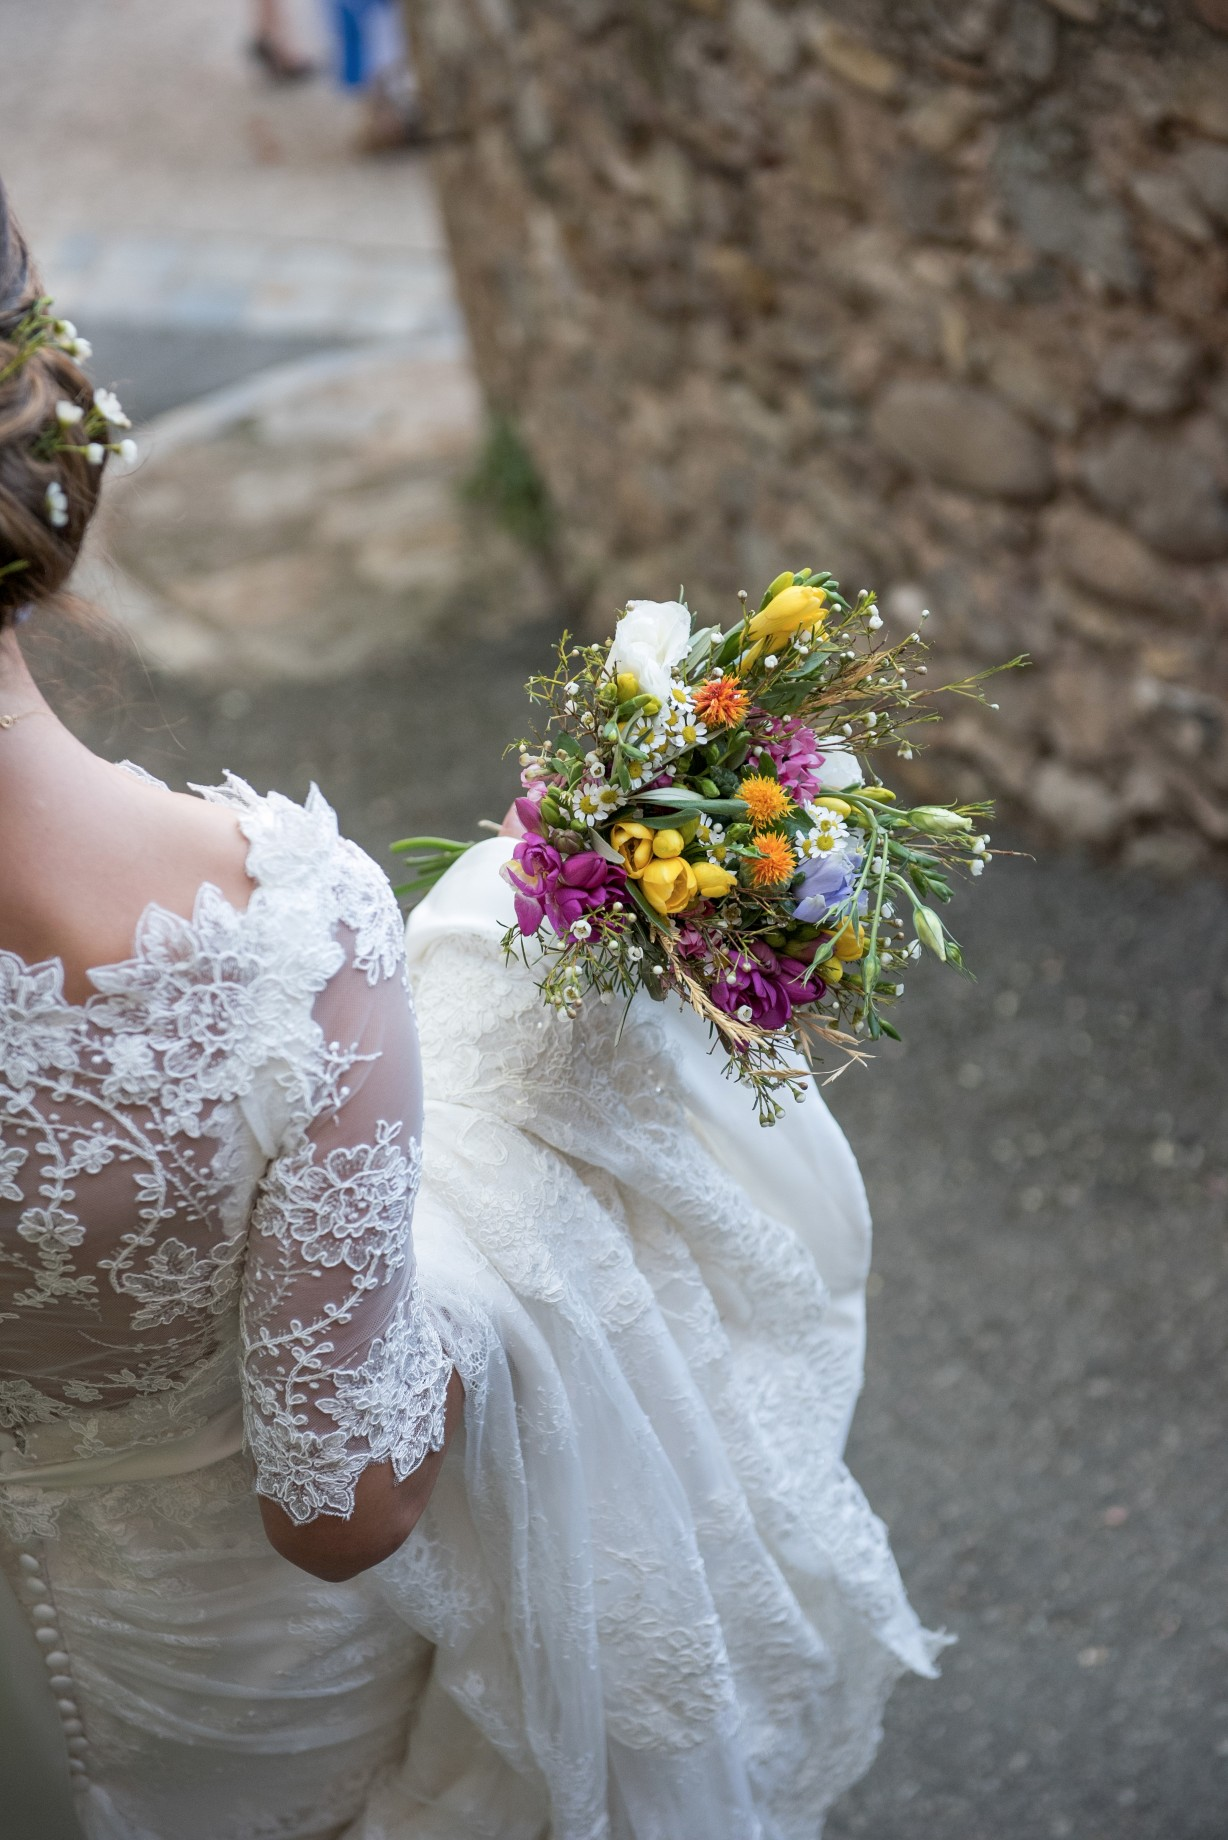 Wedding photography - South of France wedding - the bride and flowers